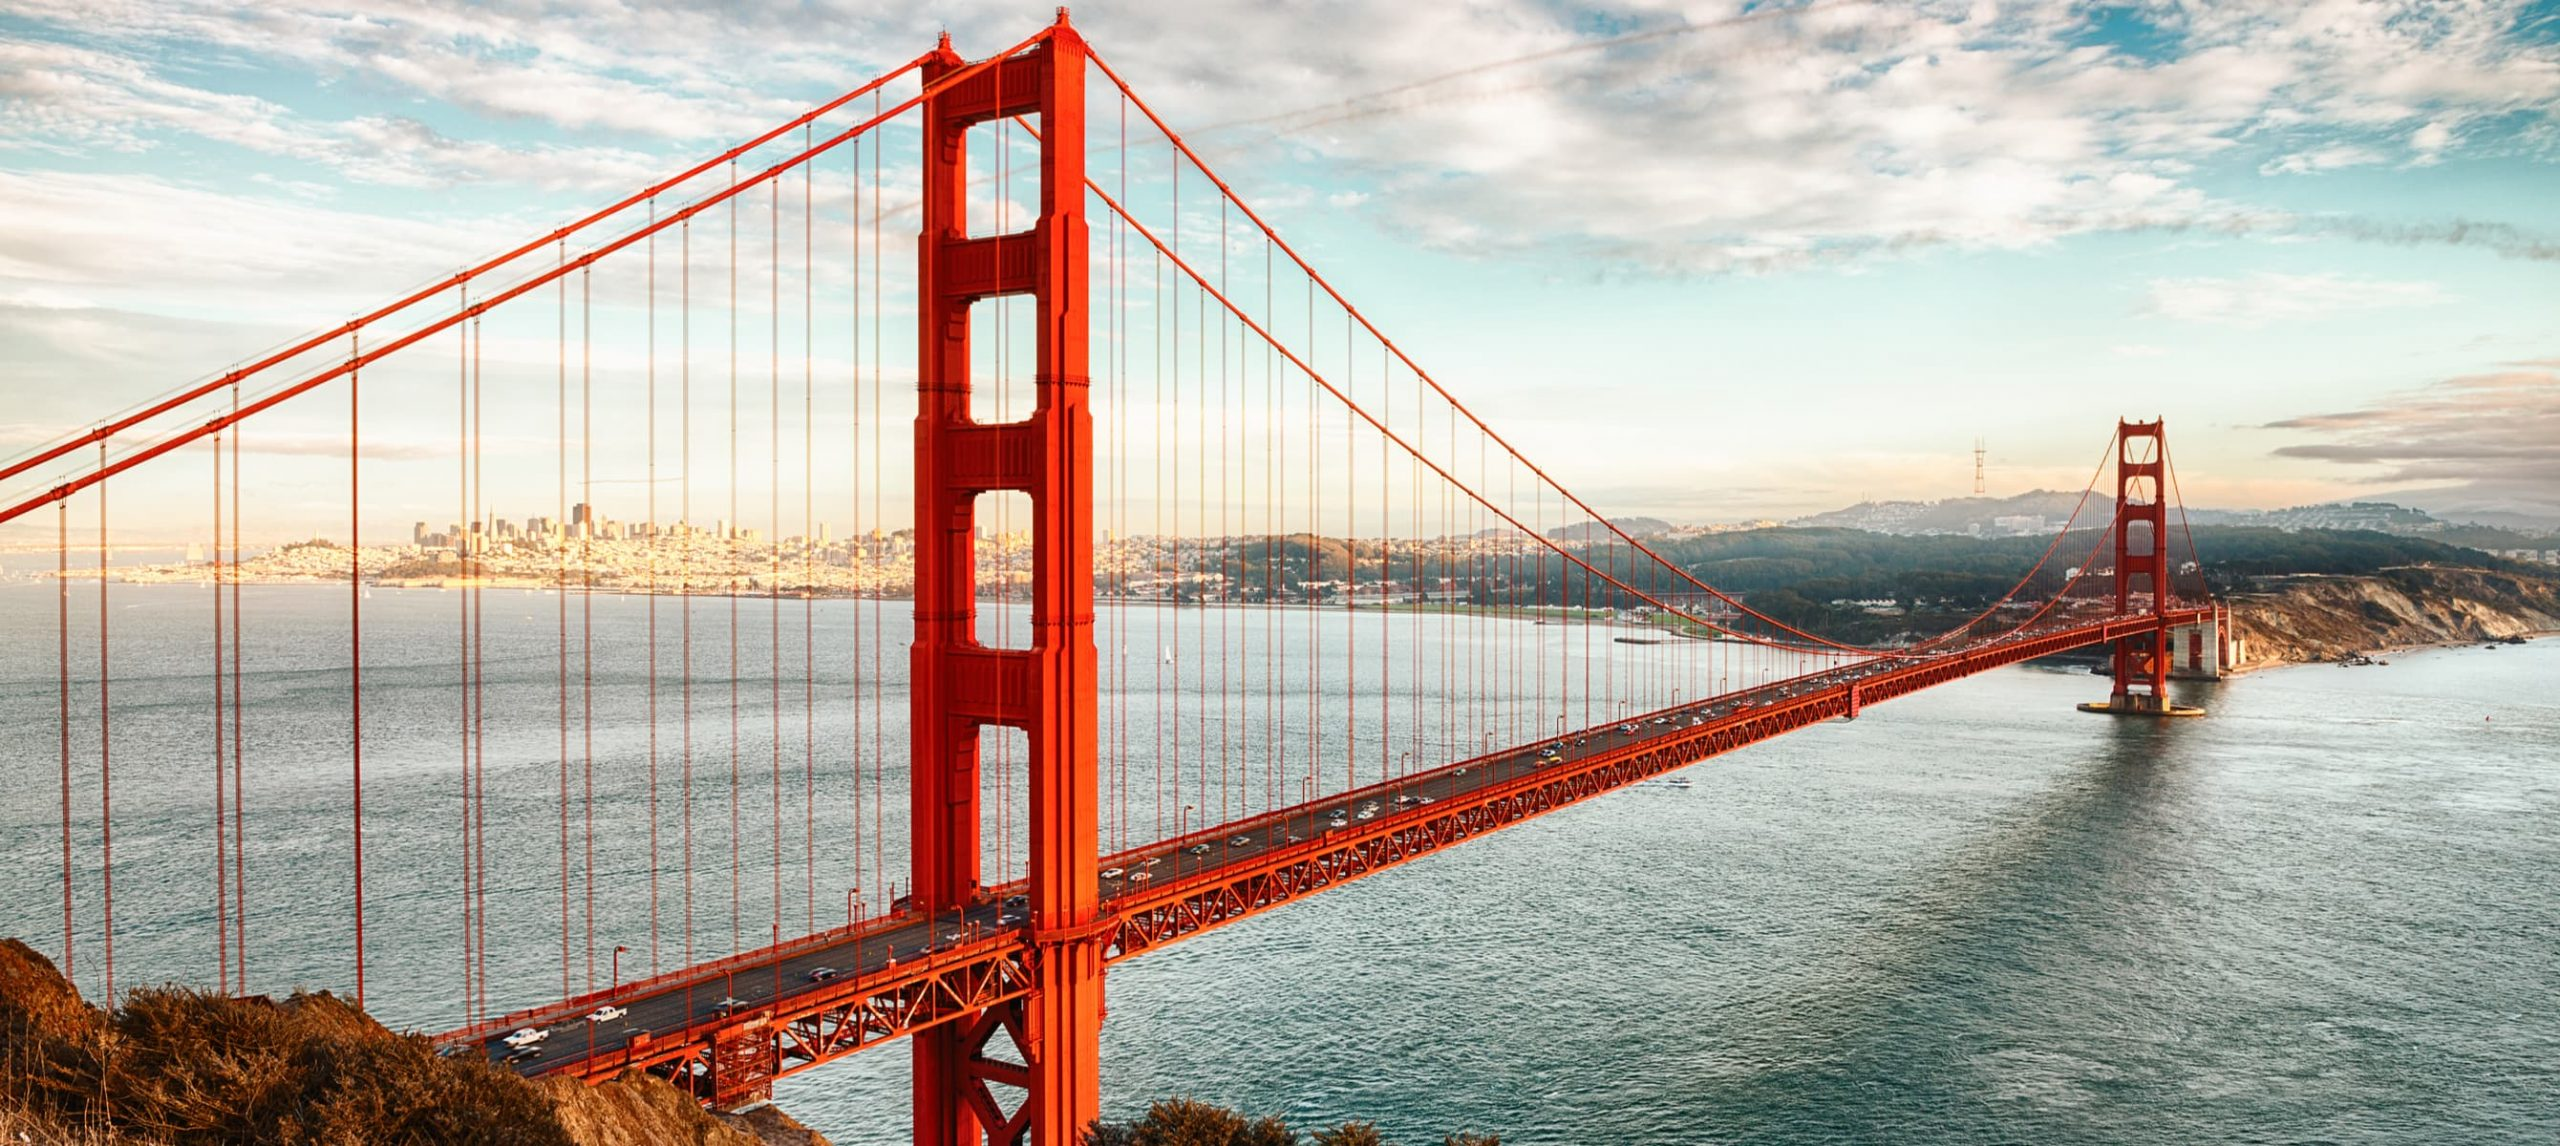 The Ultimate San Francisco Travel Guide: When To Go And What To Visit In The City